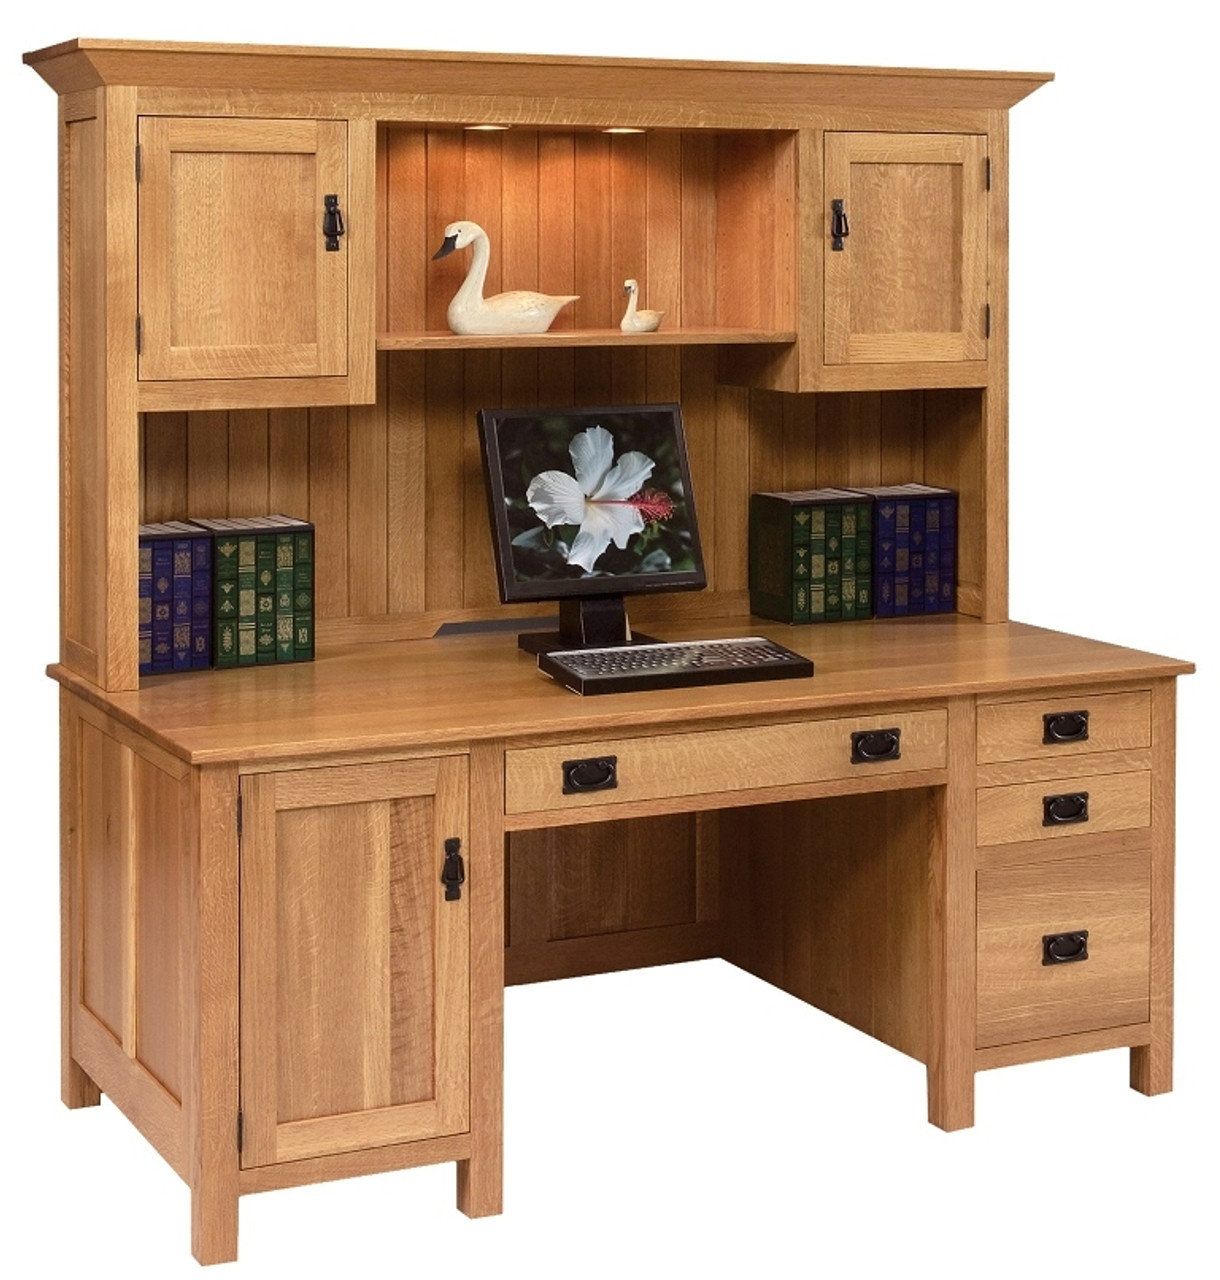 Go 3095 Computer Desk W Hutch Mission Style Whispering Pines Furniture